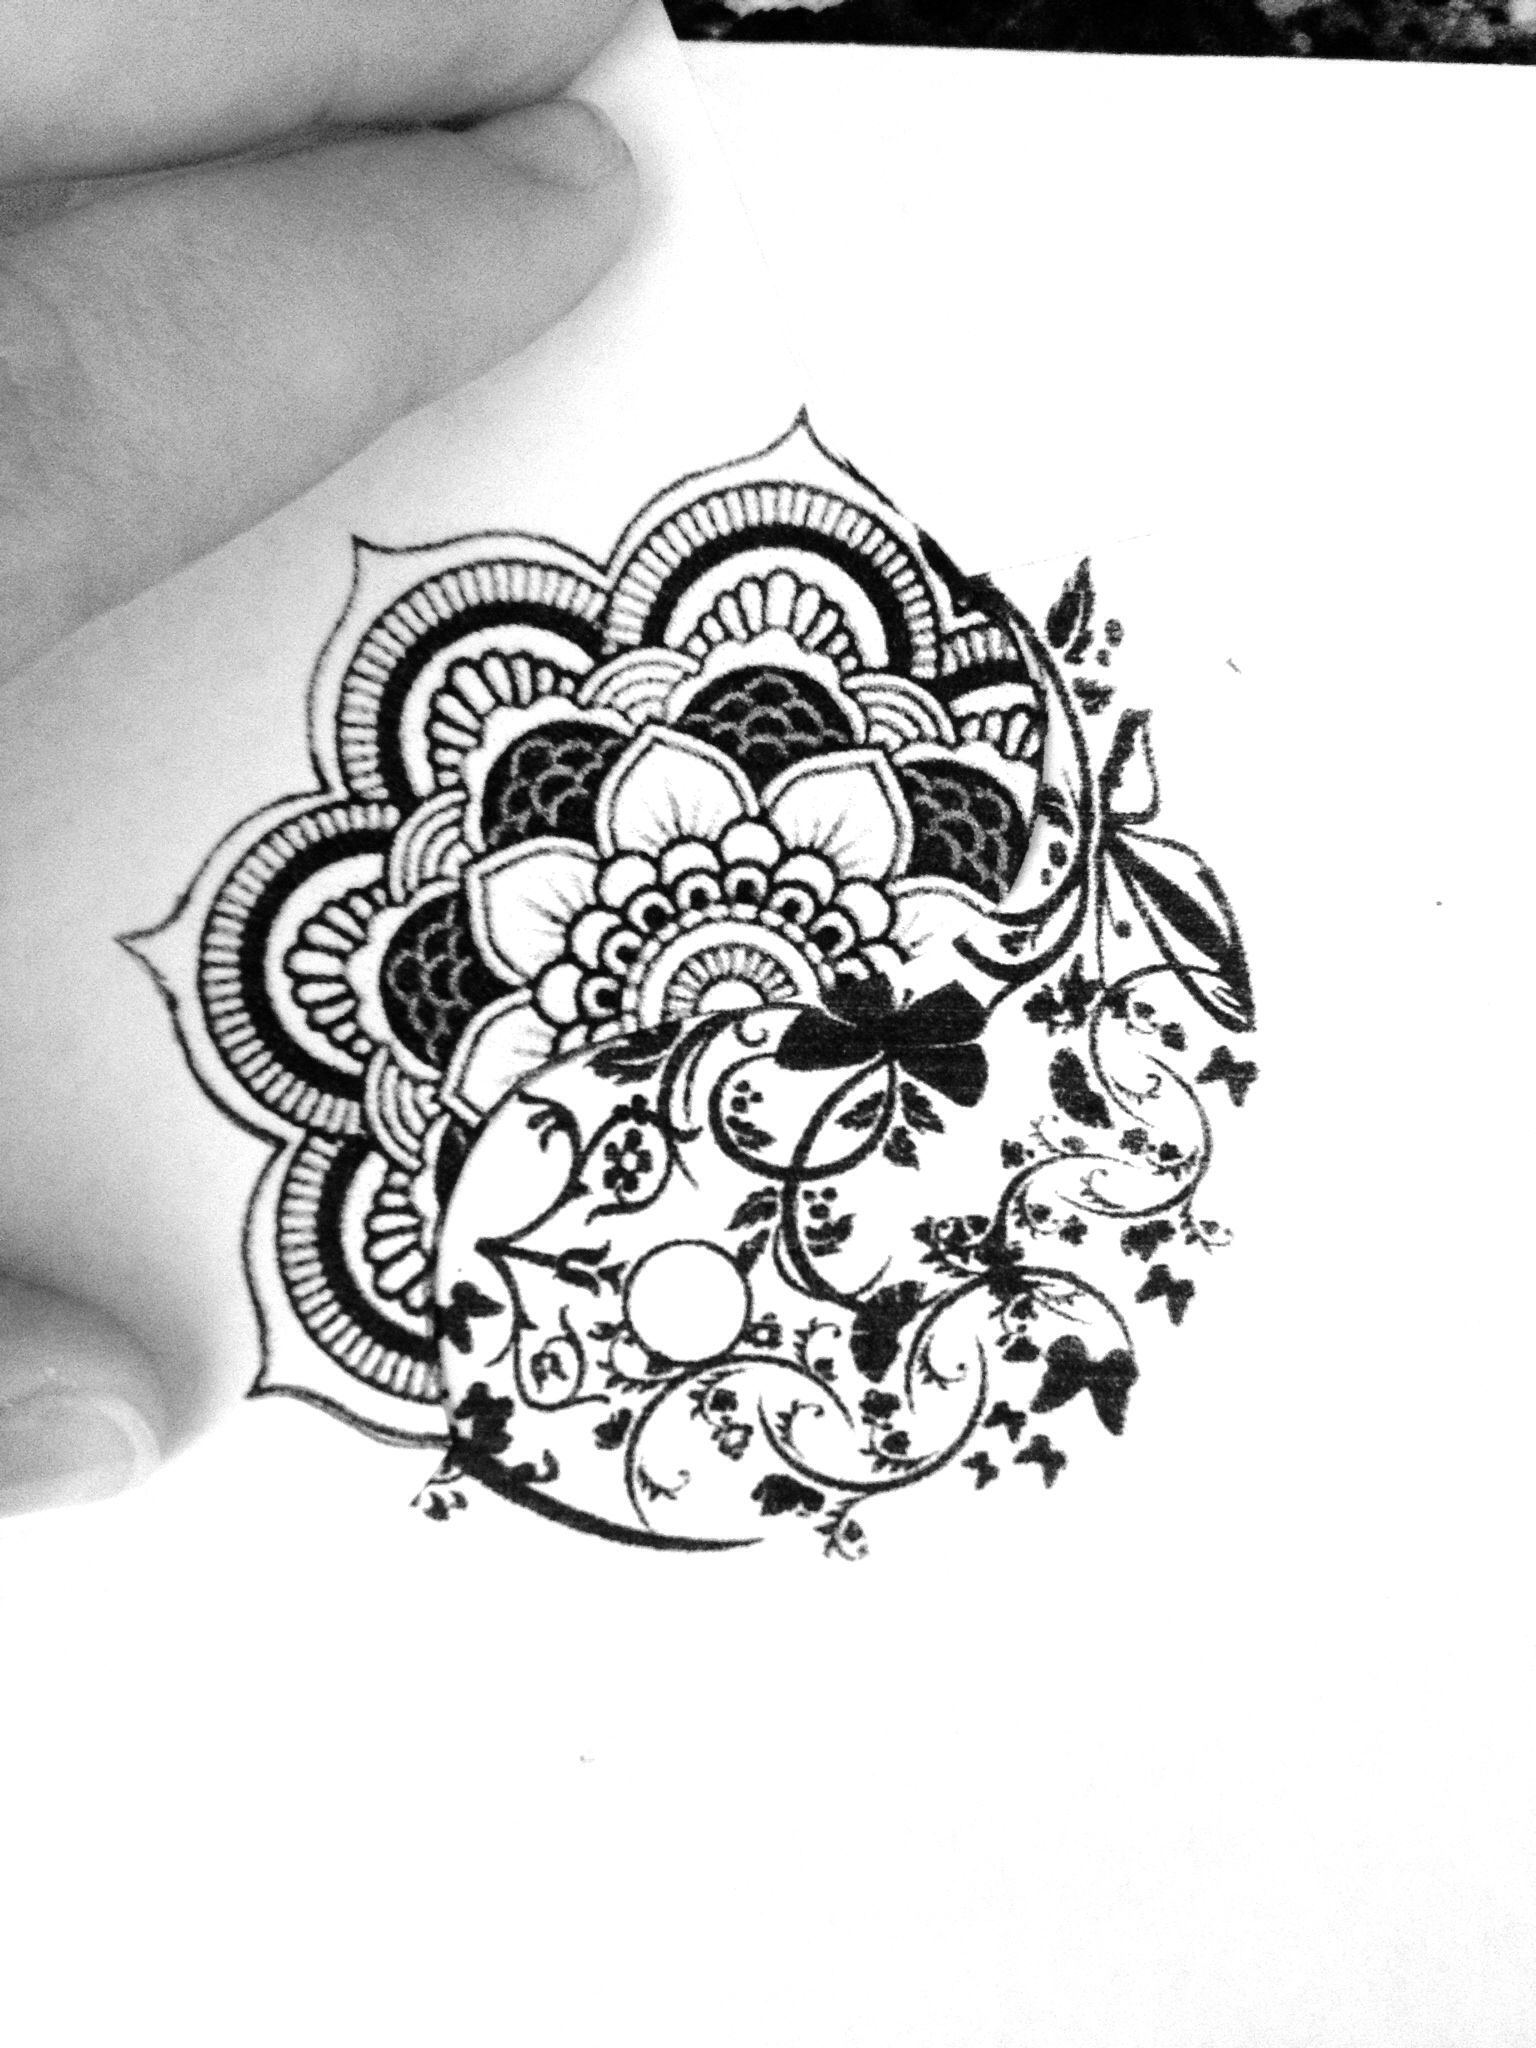 Mandala Yin Yang Looking To Build A Sternum Tattoo This Has Some